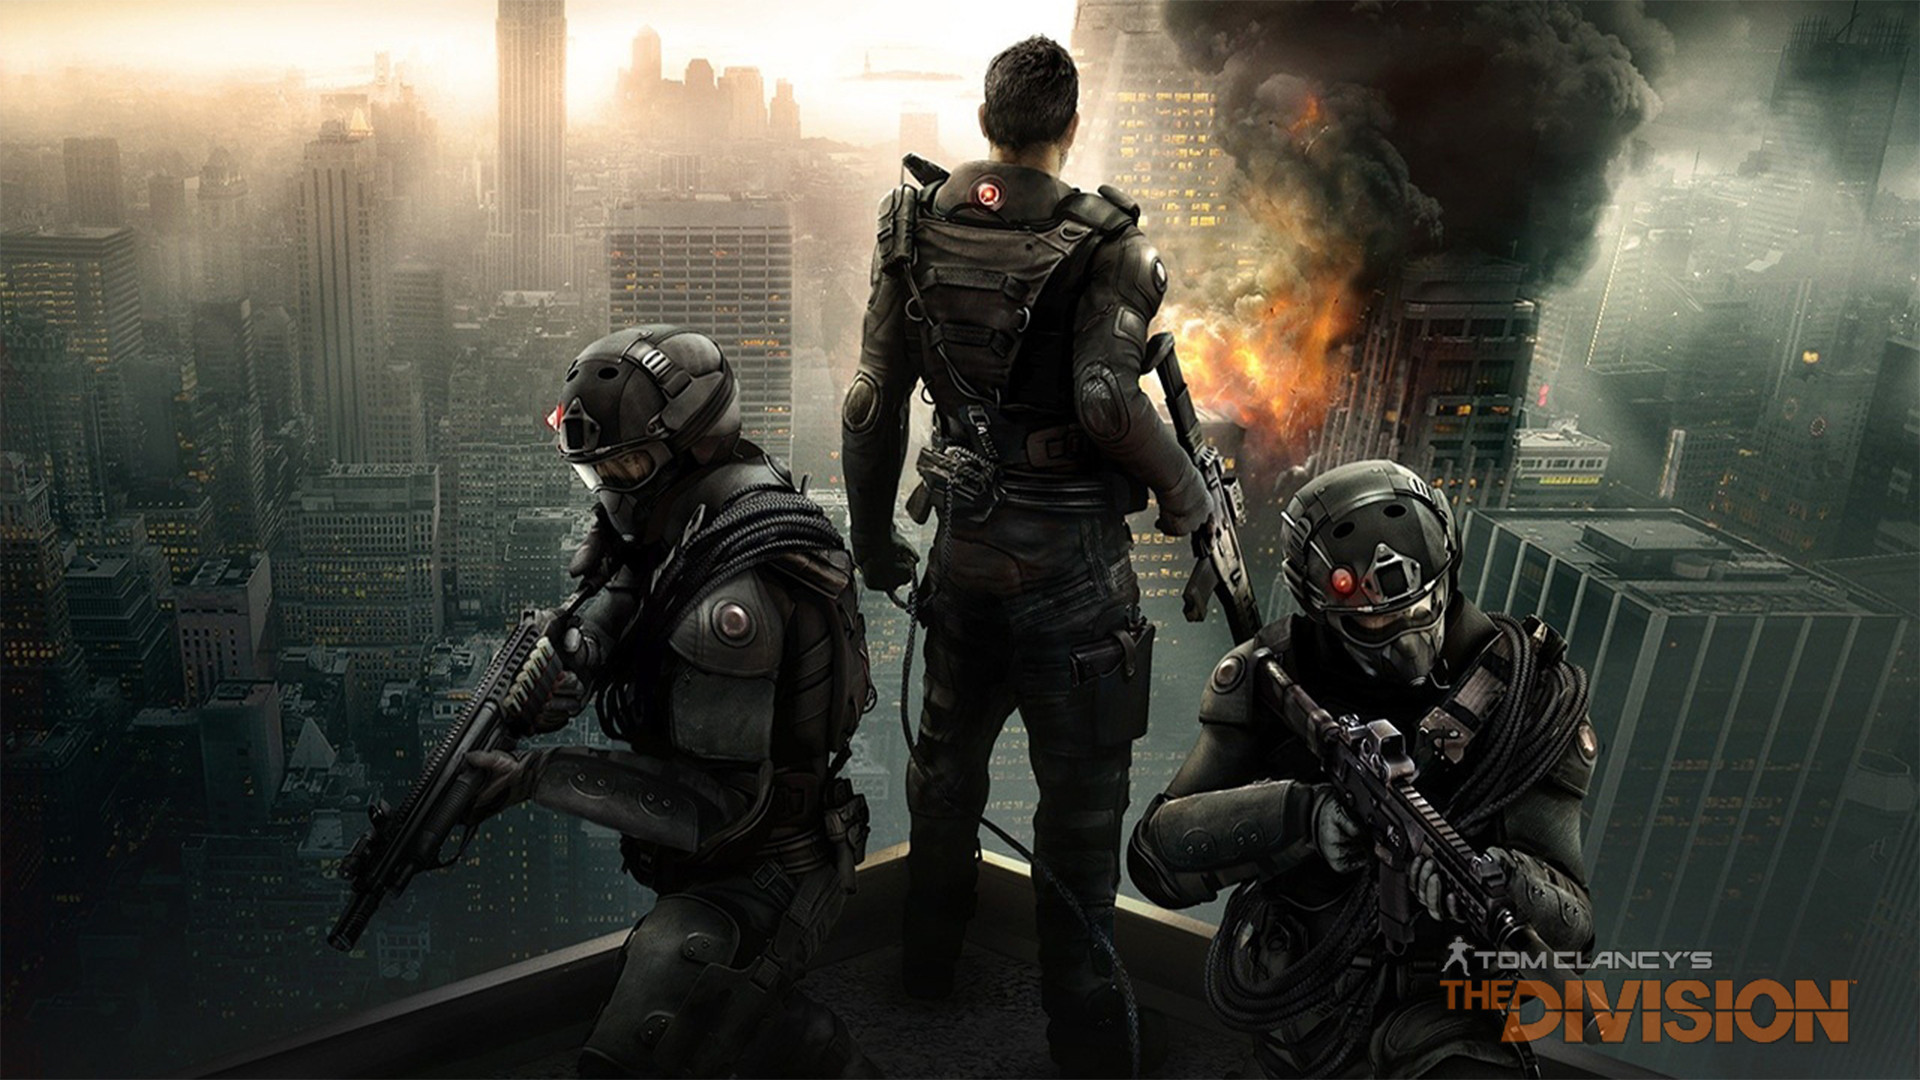 Photo of Tom Clancy's The Division got new glorious screenshots